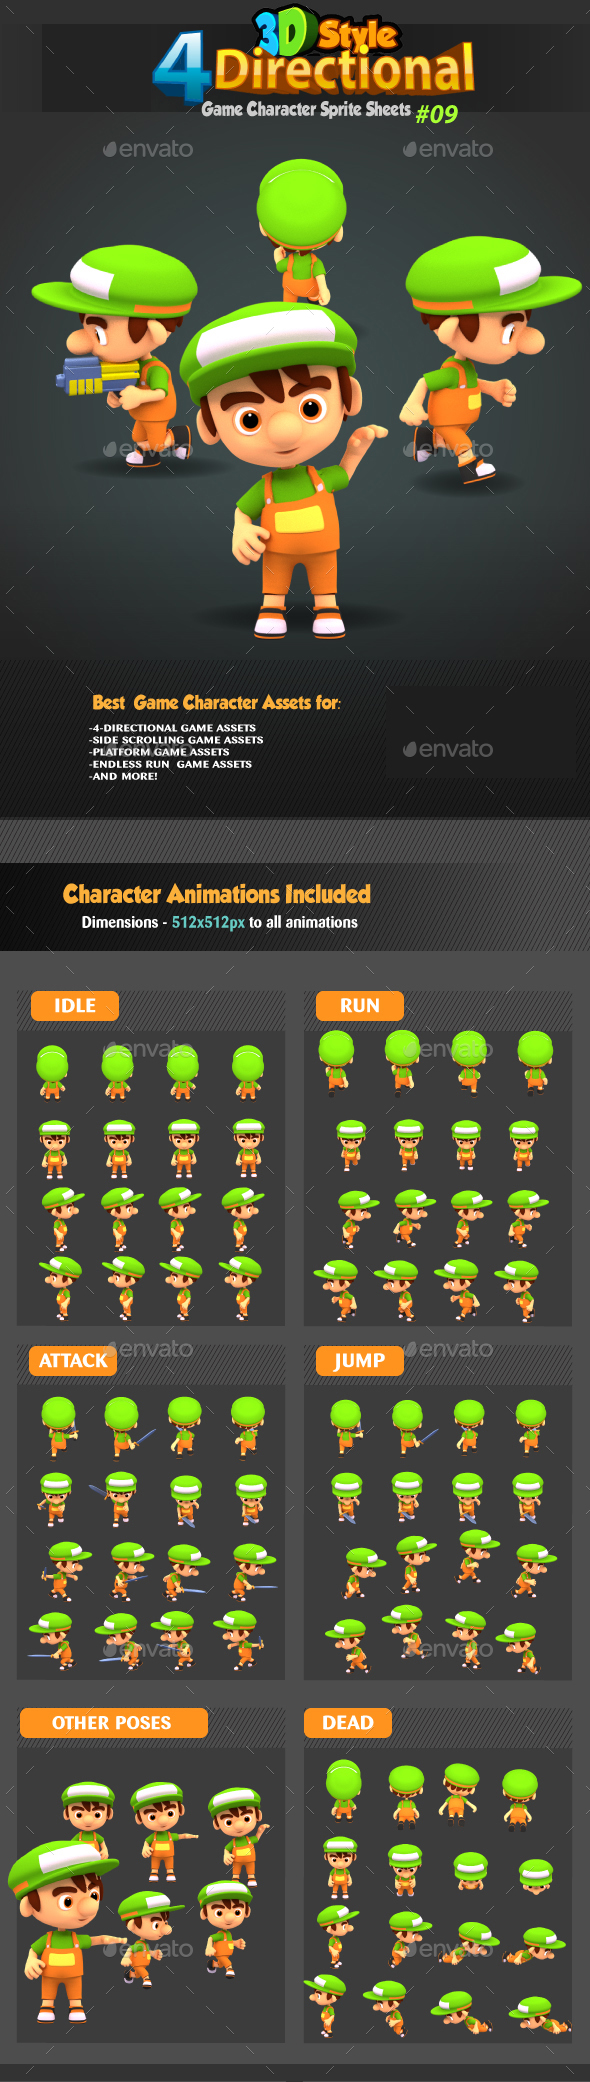 4 Directional 3D Style Game Character Sprites 09